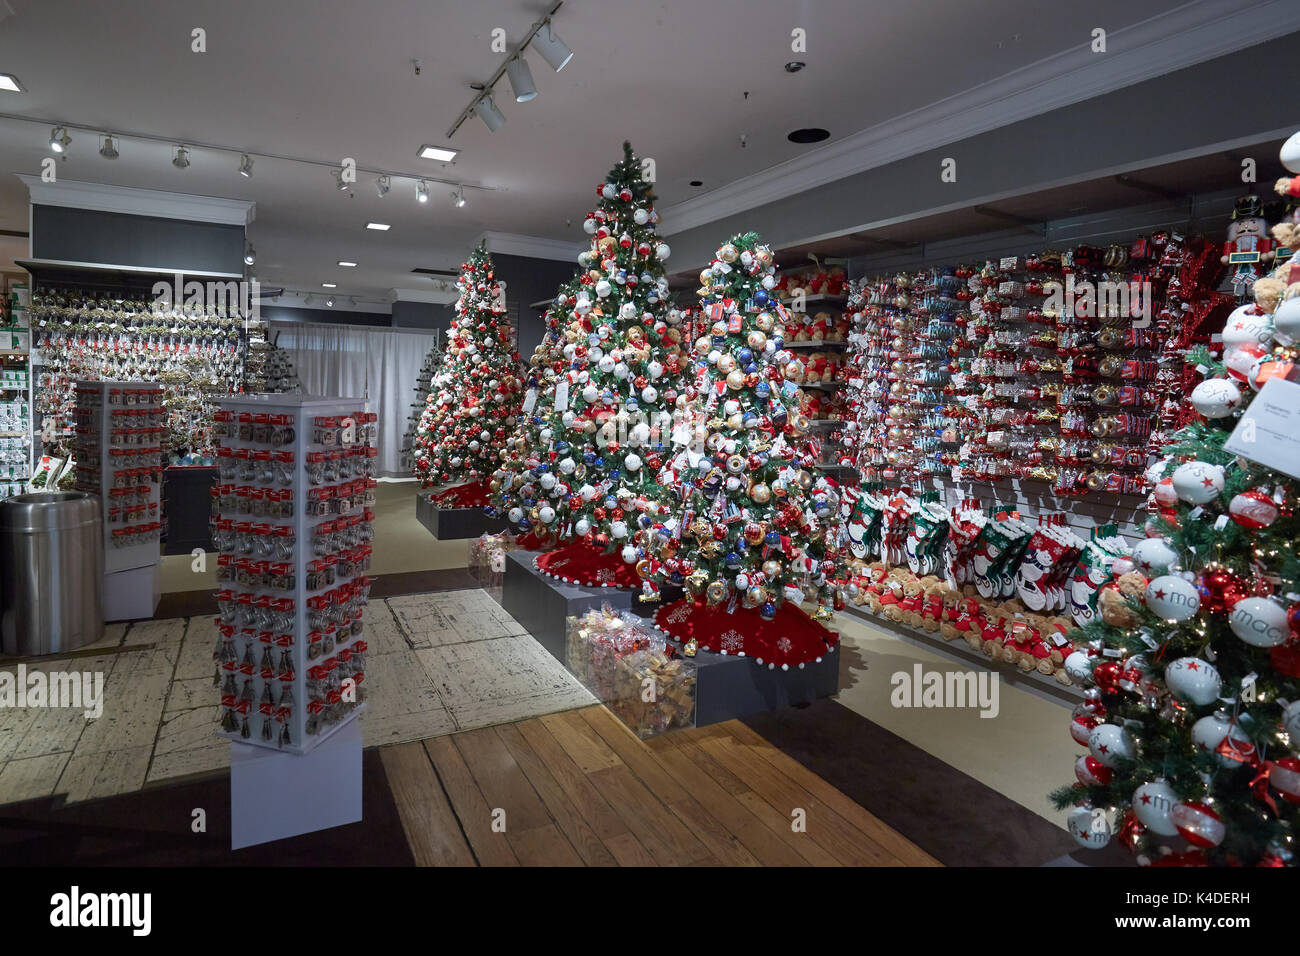 Macys Department Store Interior Stock Photos Amp Macys